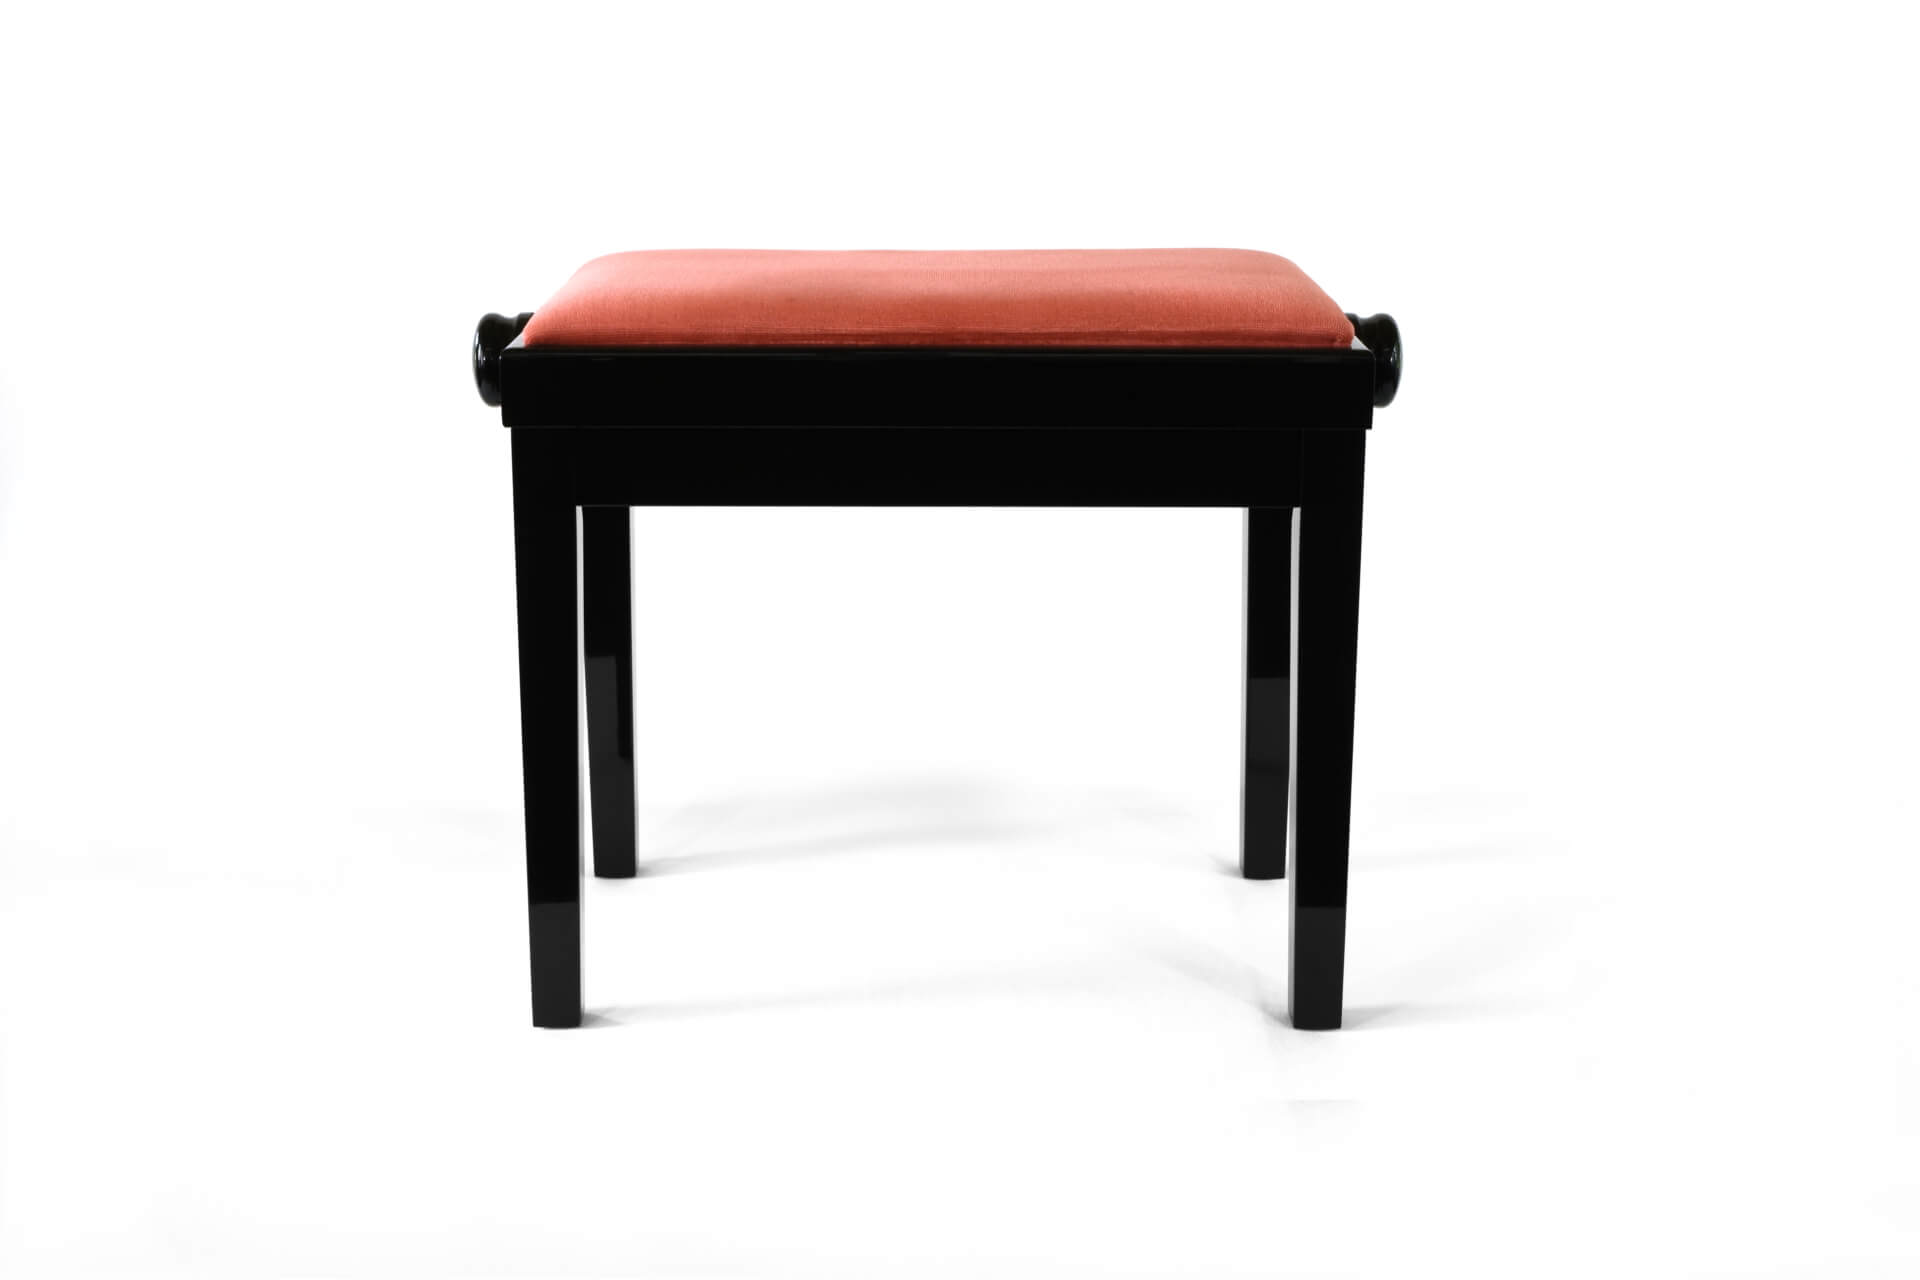 Small Sitting Stools Small Bench For Piano Adjustable In Height Rossini